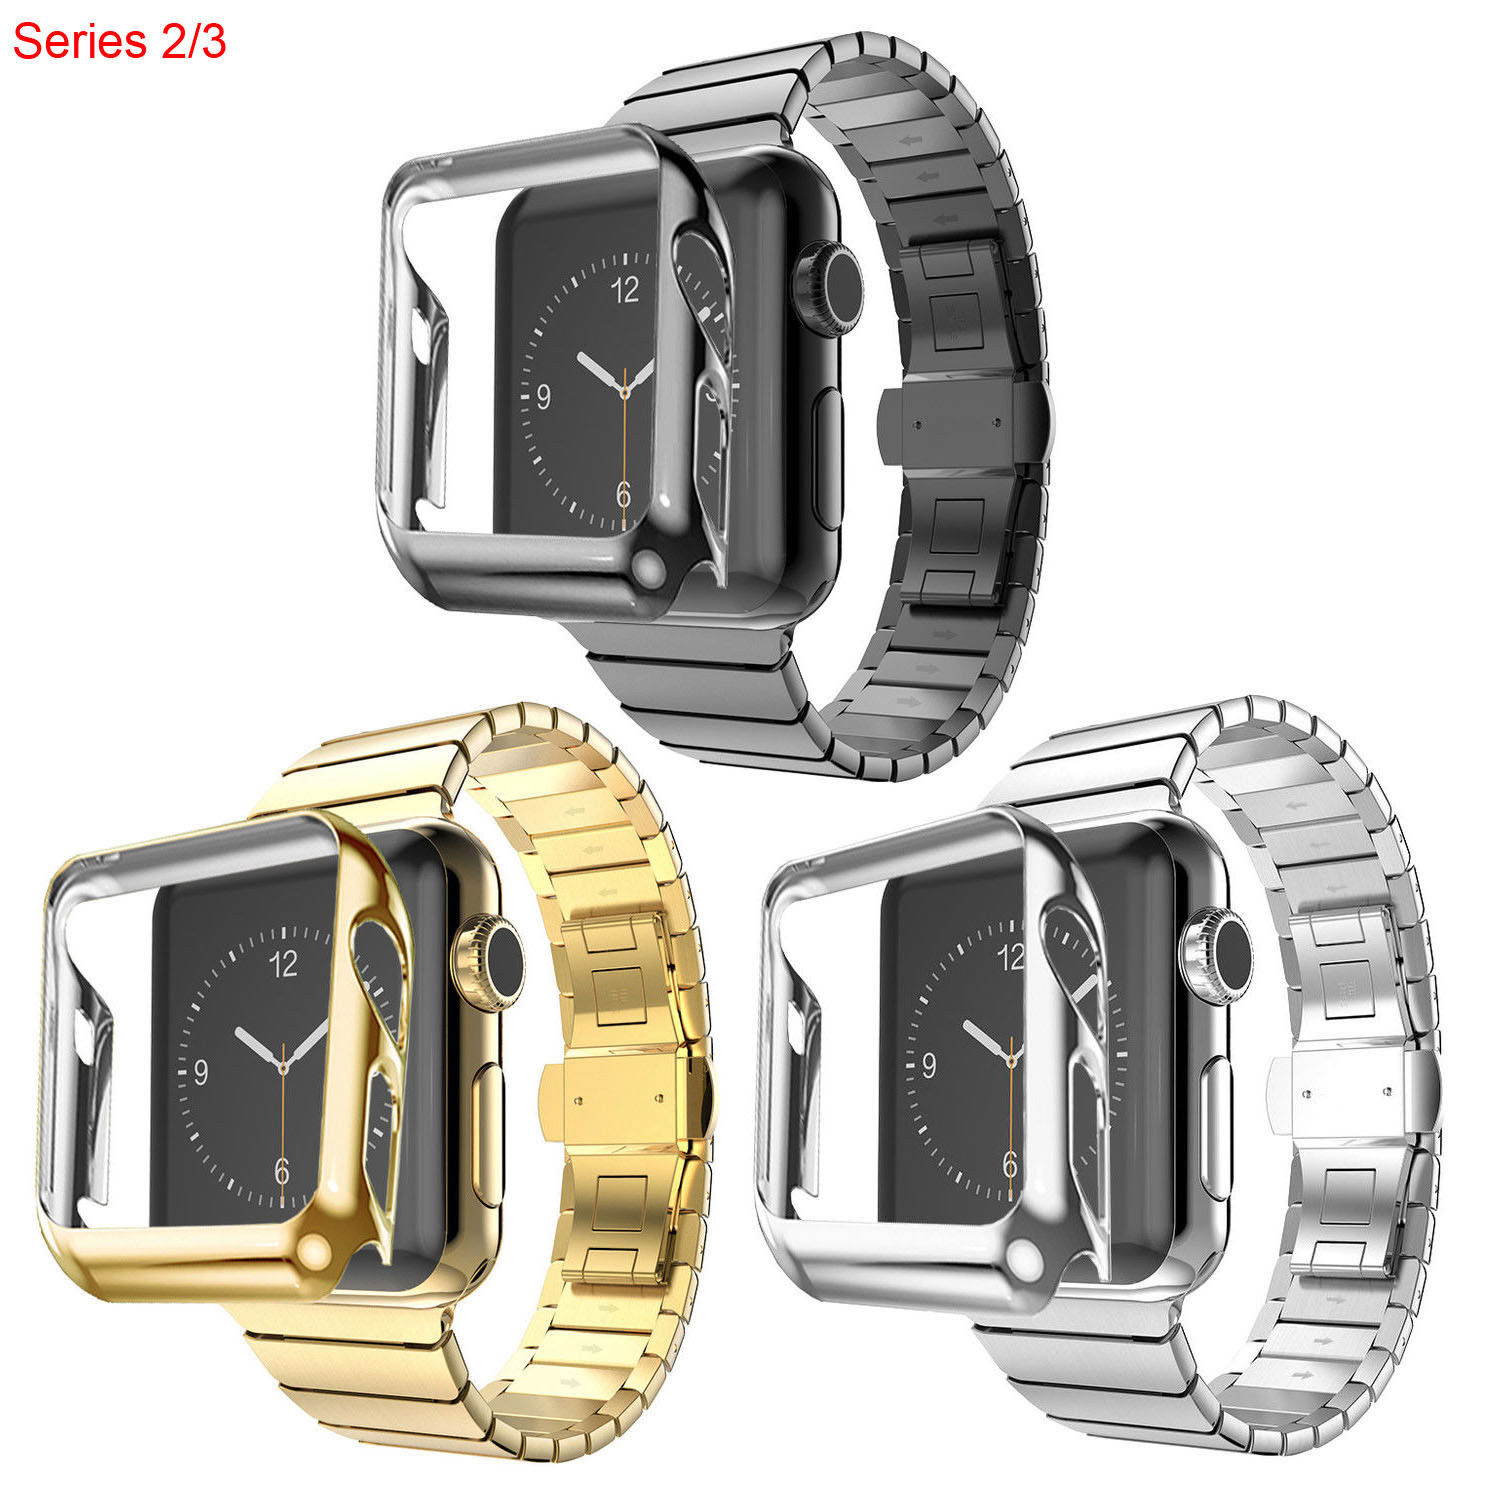 Protective Cover + Stainless Steel Link Bracelet for Apple Watch Series 3 2 Band For iWatch Strap Gold Plating Case 42mm 38mm sport loop for apple watch band case 42mm 38mm nylon watch strap bracelet with metal frame protector case cover for iwatch 3 2 1